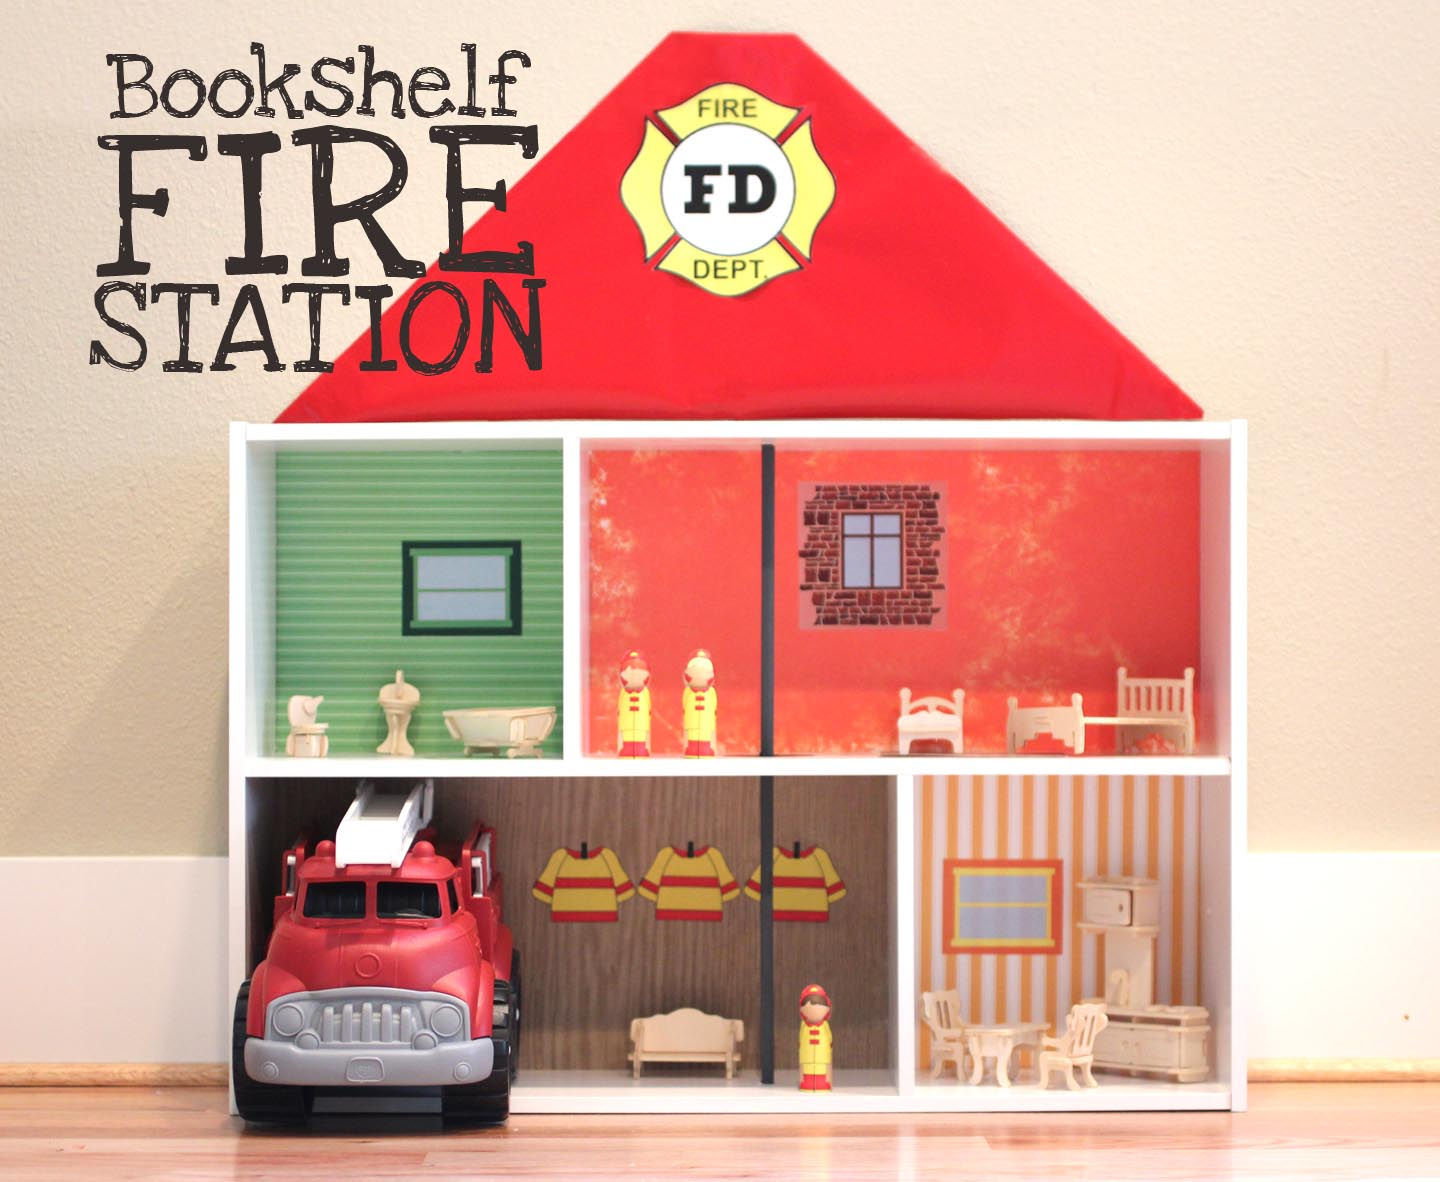 Boys Fire Station Toy House 1440 x 1182